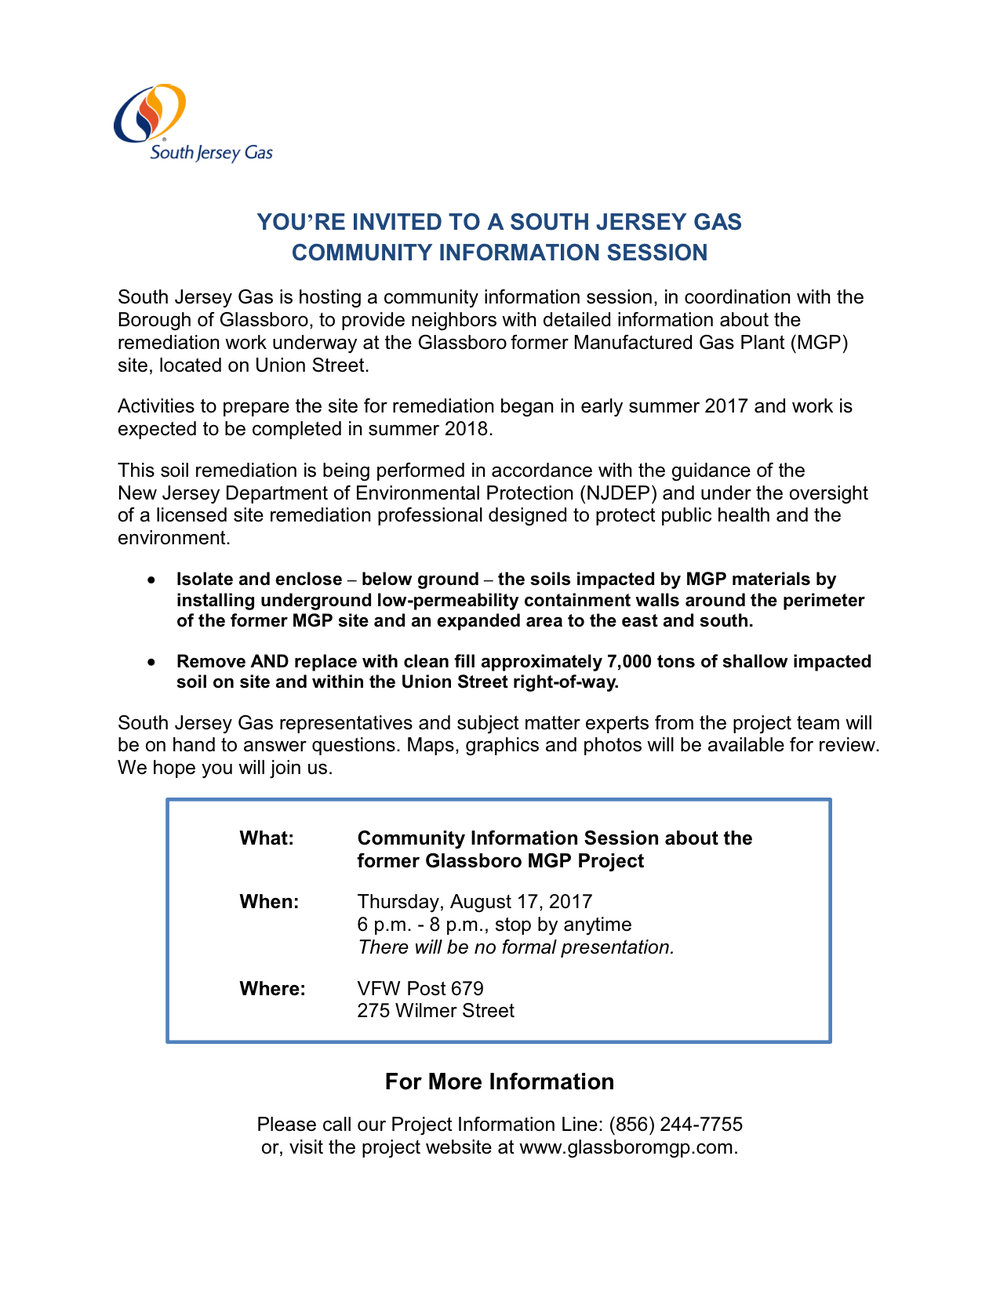 Glassboro south jersey gas information session